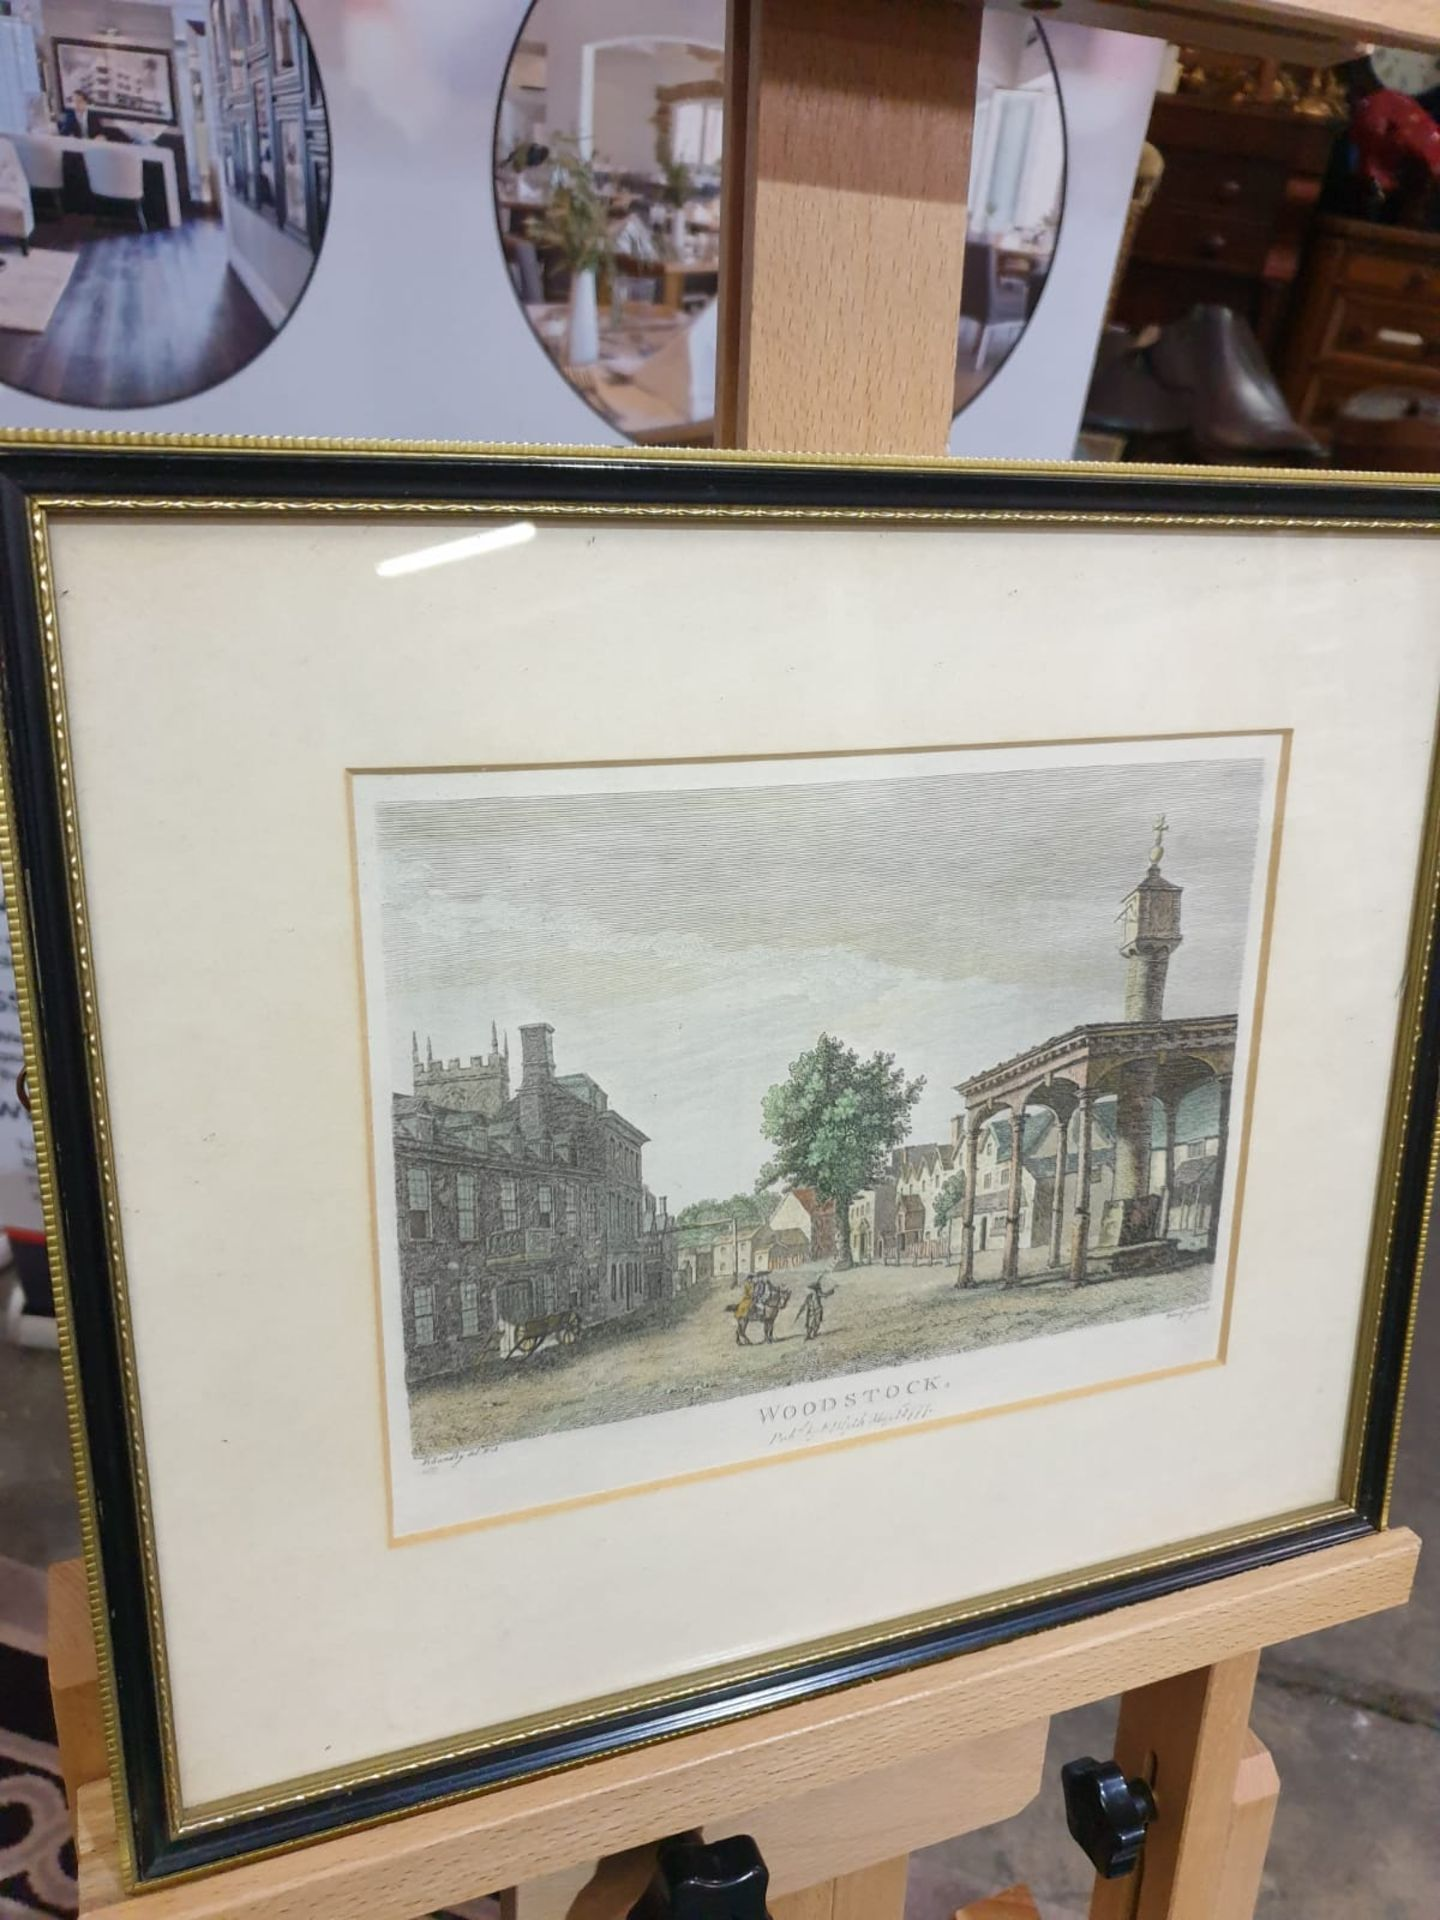 Framed Paul Sandby - Woodstock, hand-coloured etching by Godfrey, published by F. Blyth 1777 36 x